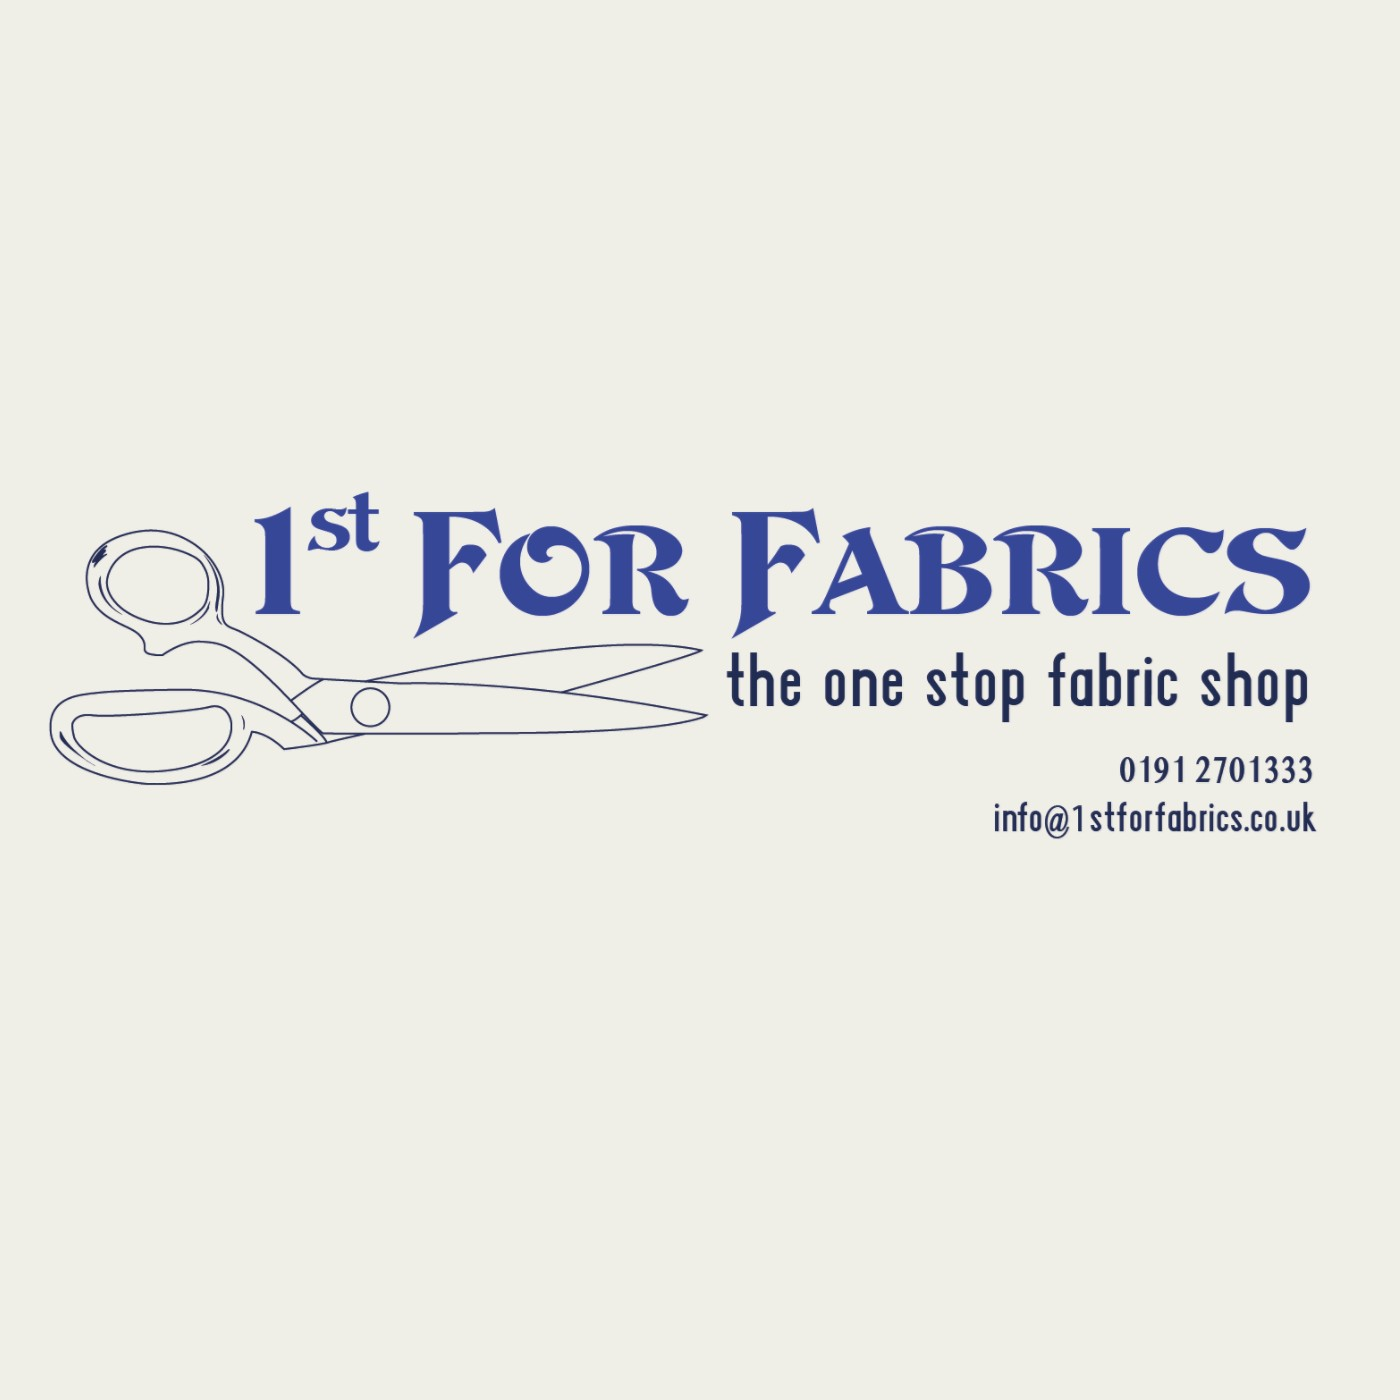 Logo of 1st For Fabrics Fabric Shops In Newcastle Upon Tyne, Tyne And Wear